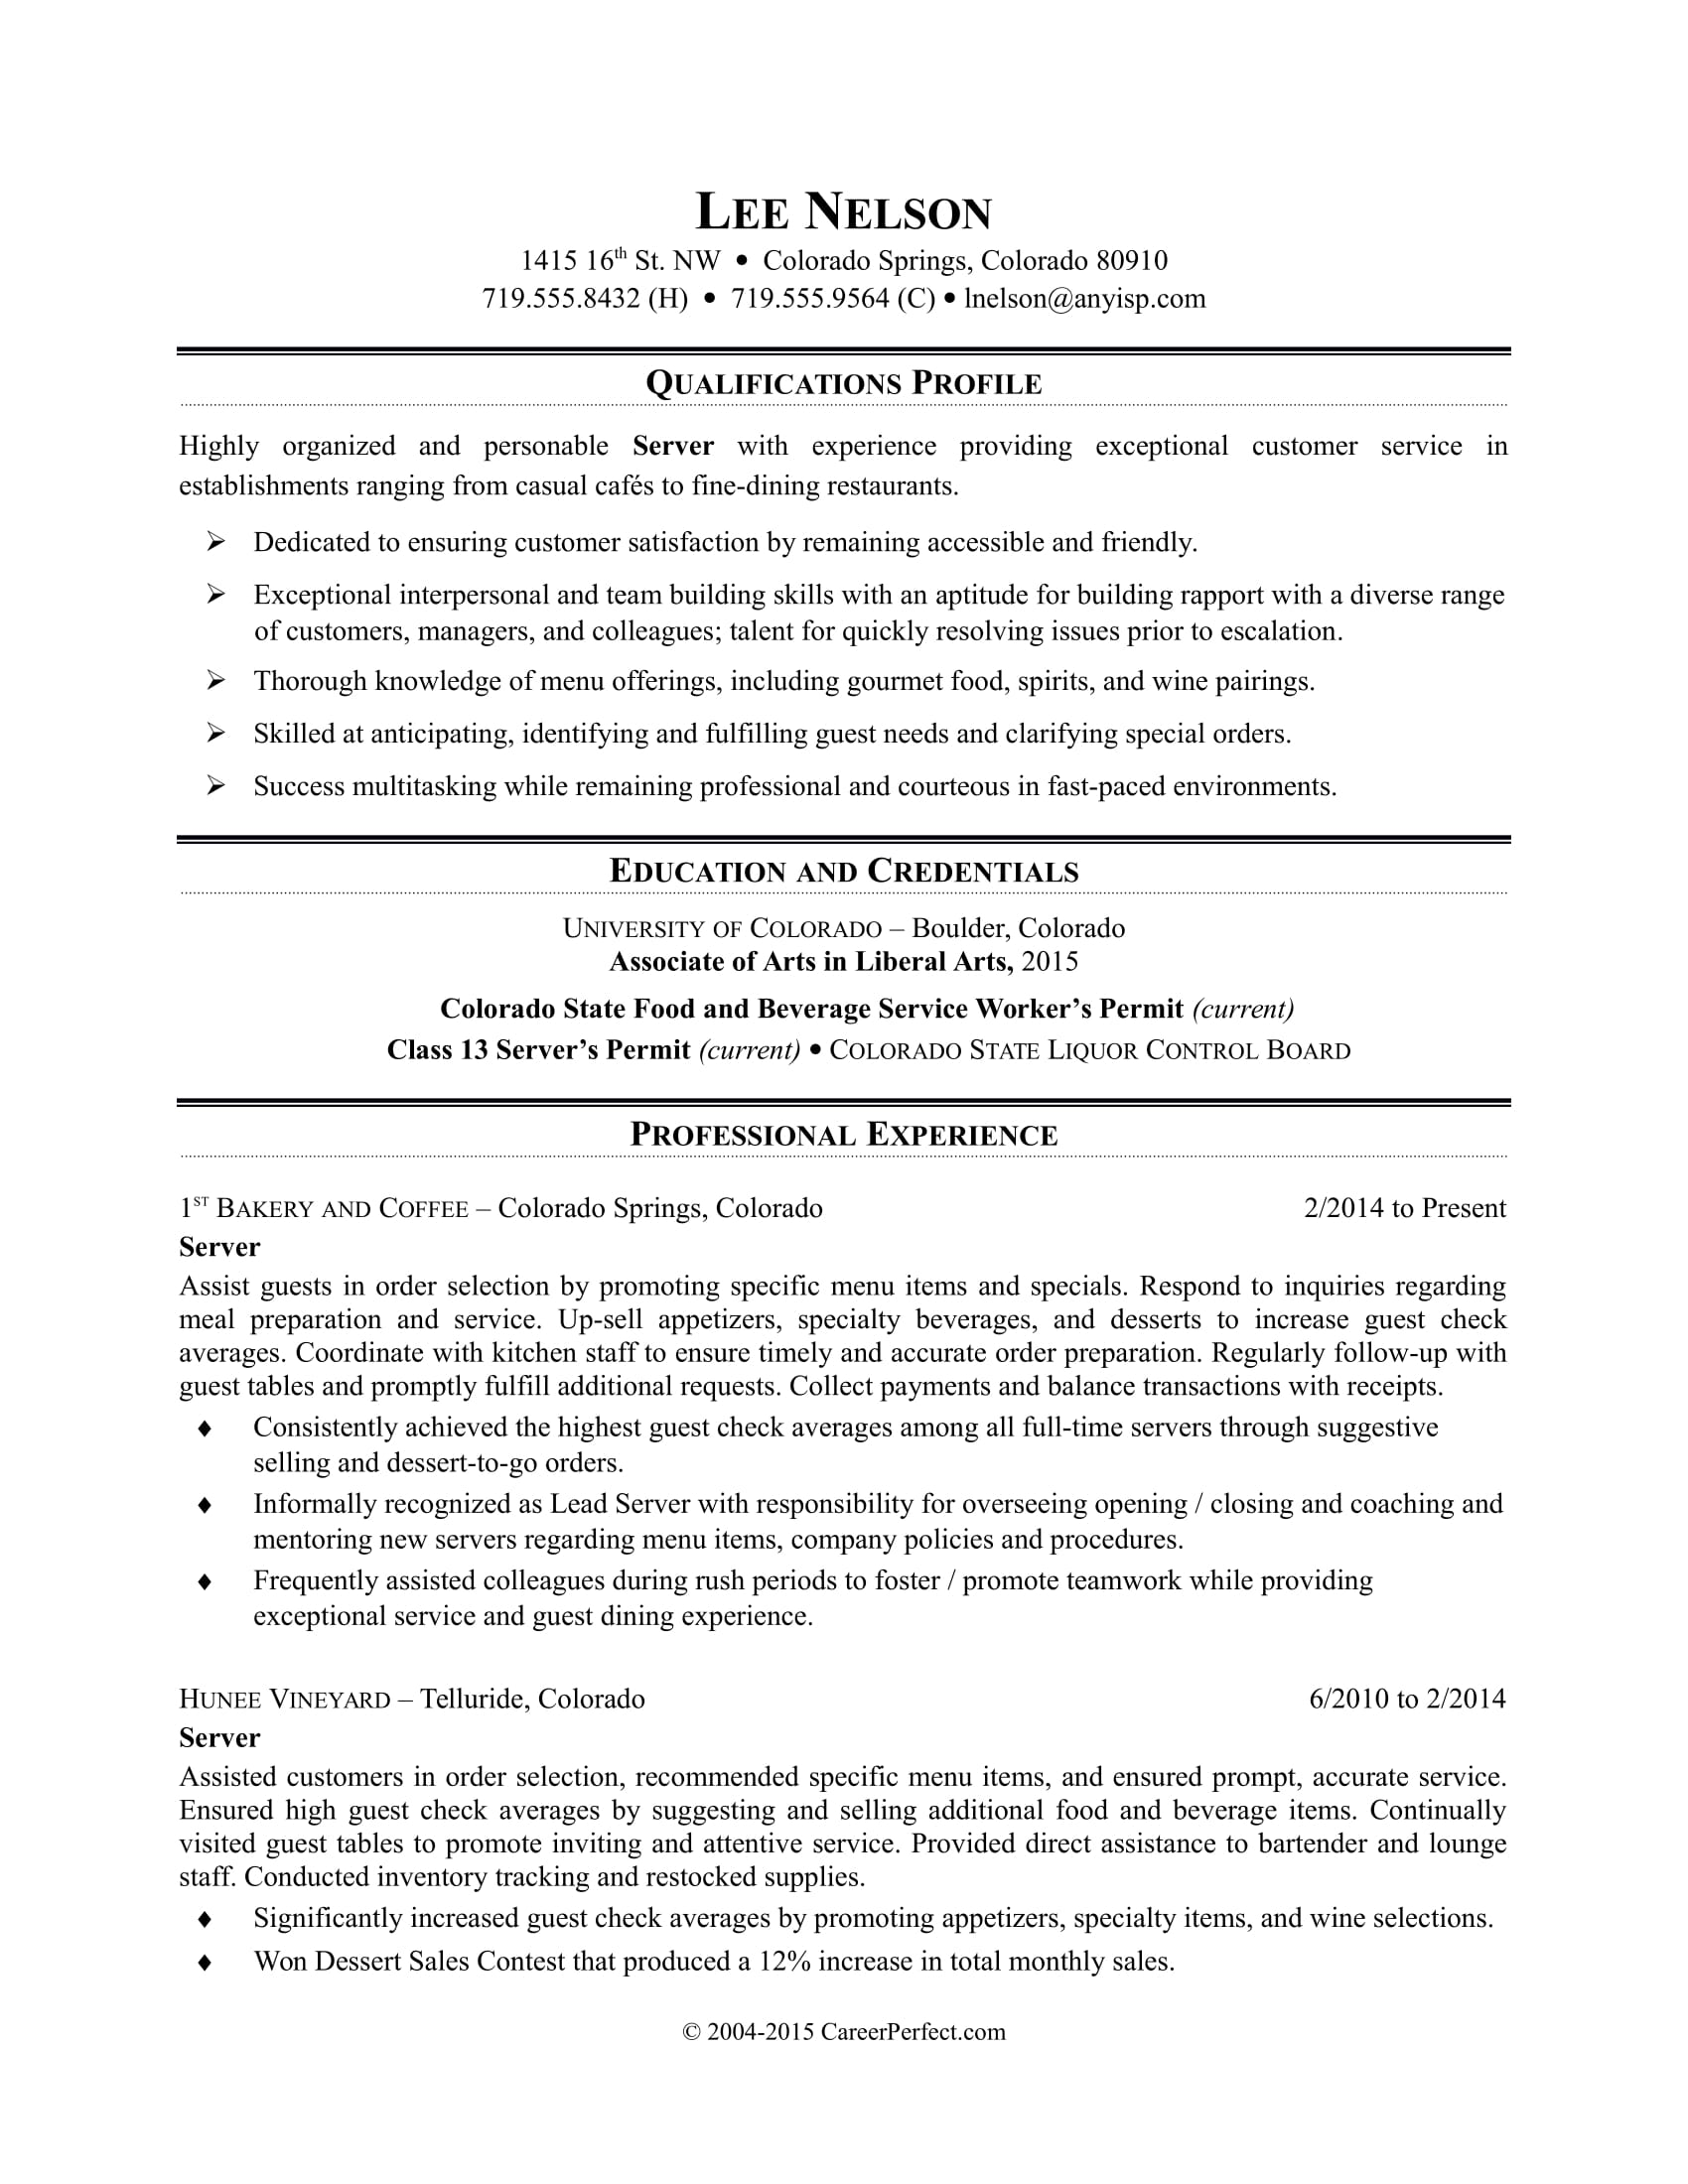 sample resume for a restaurant server - Resume Templates For Servers